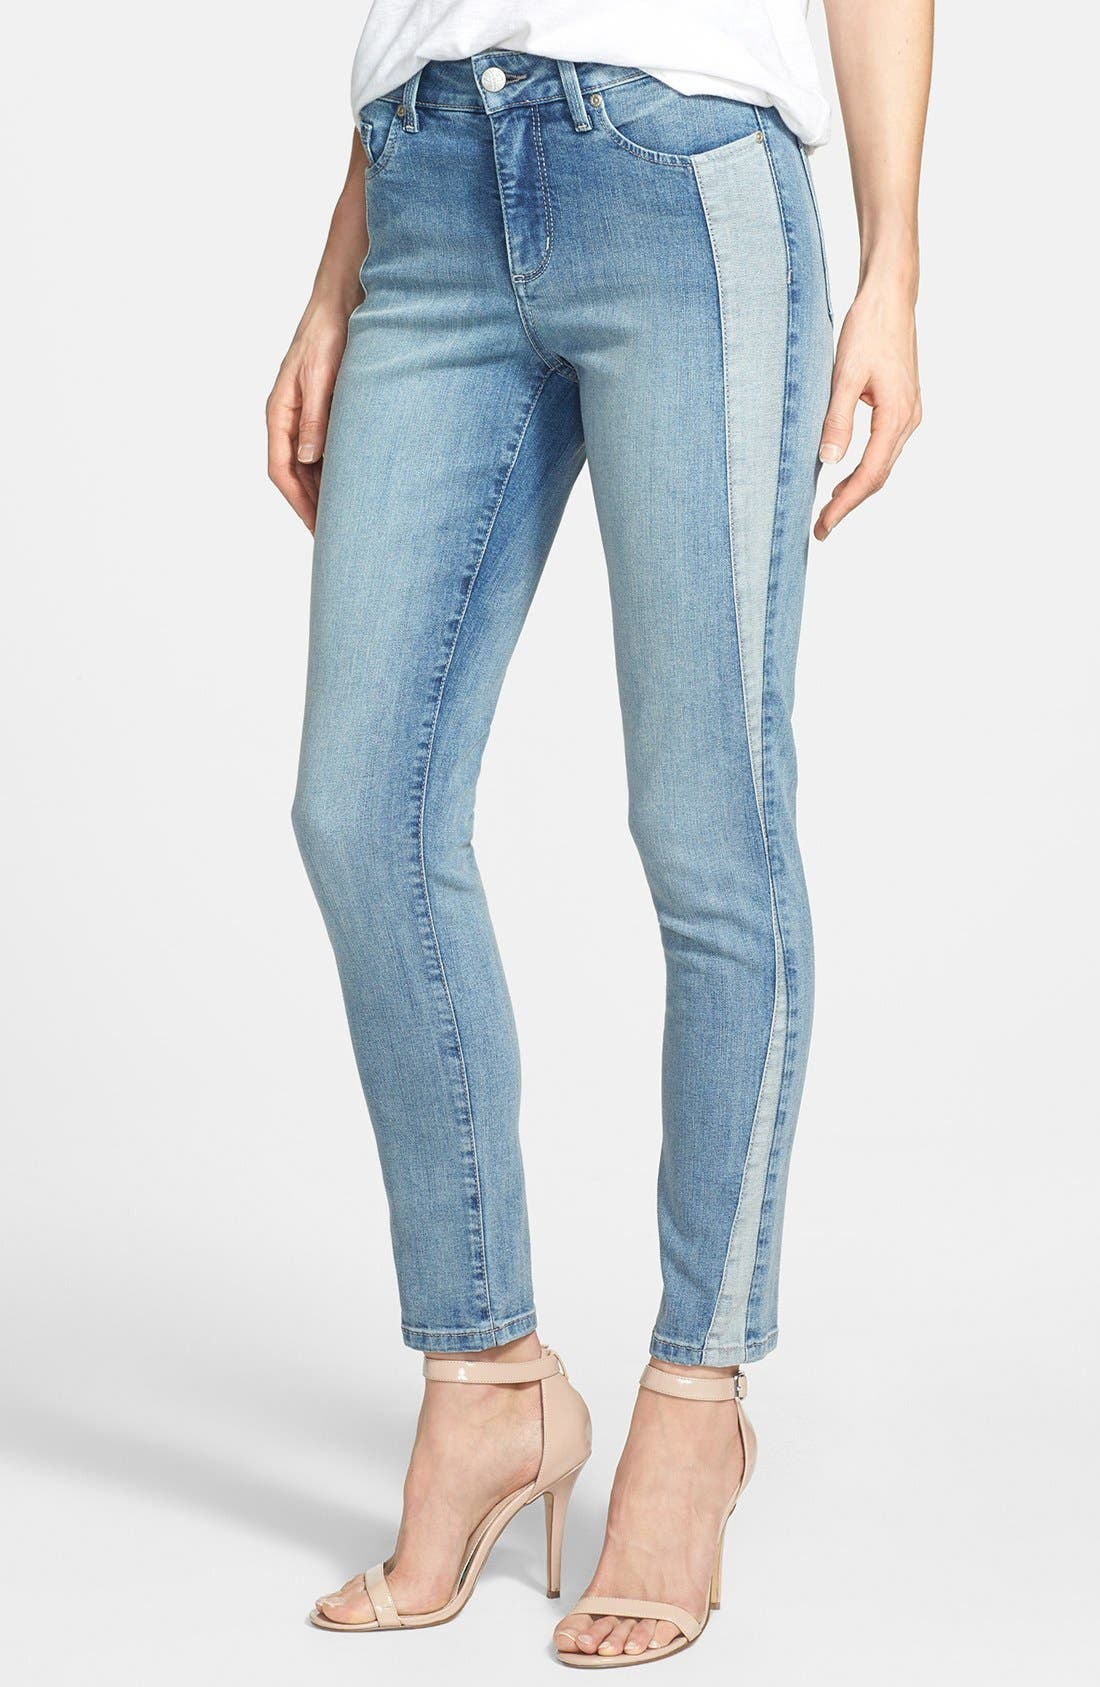 Alternate Image 1 Selected - NYDJ 'Annalynn' Side Inset Stretch Skinny Jeans (Stockton) (Regular & Petite)